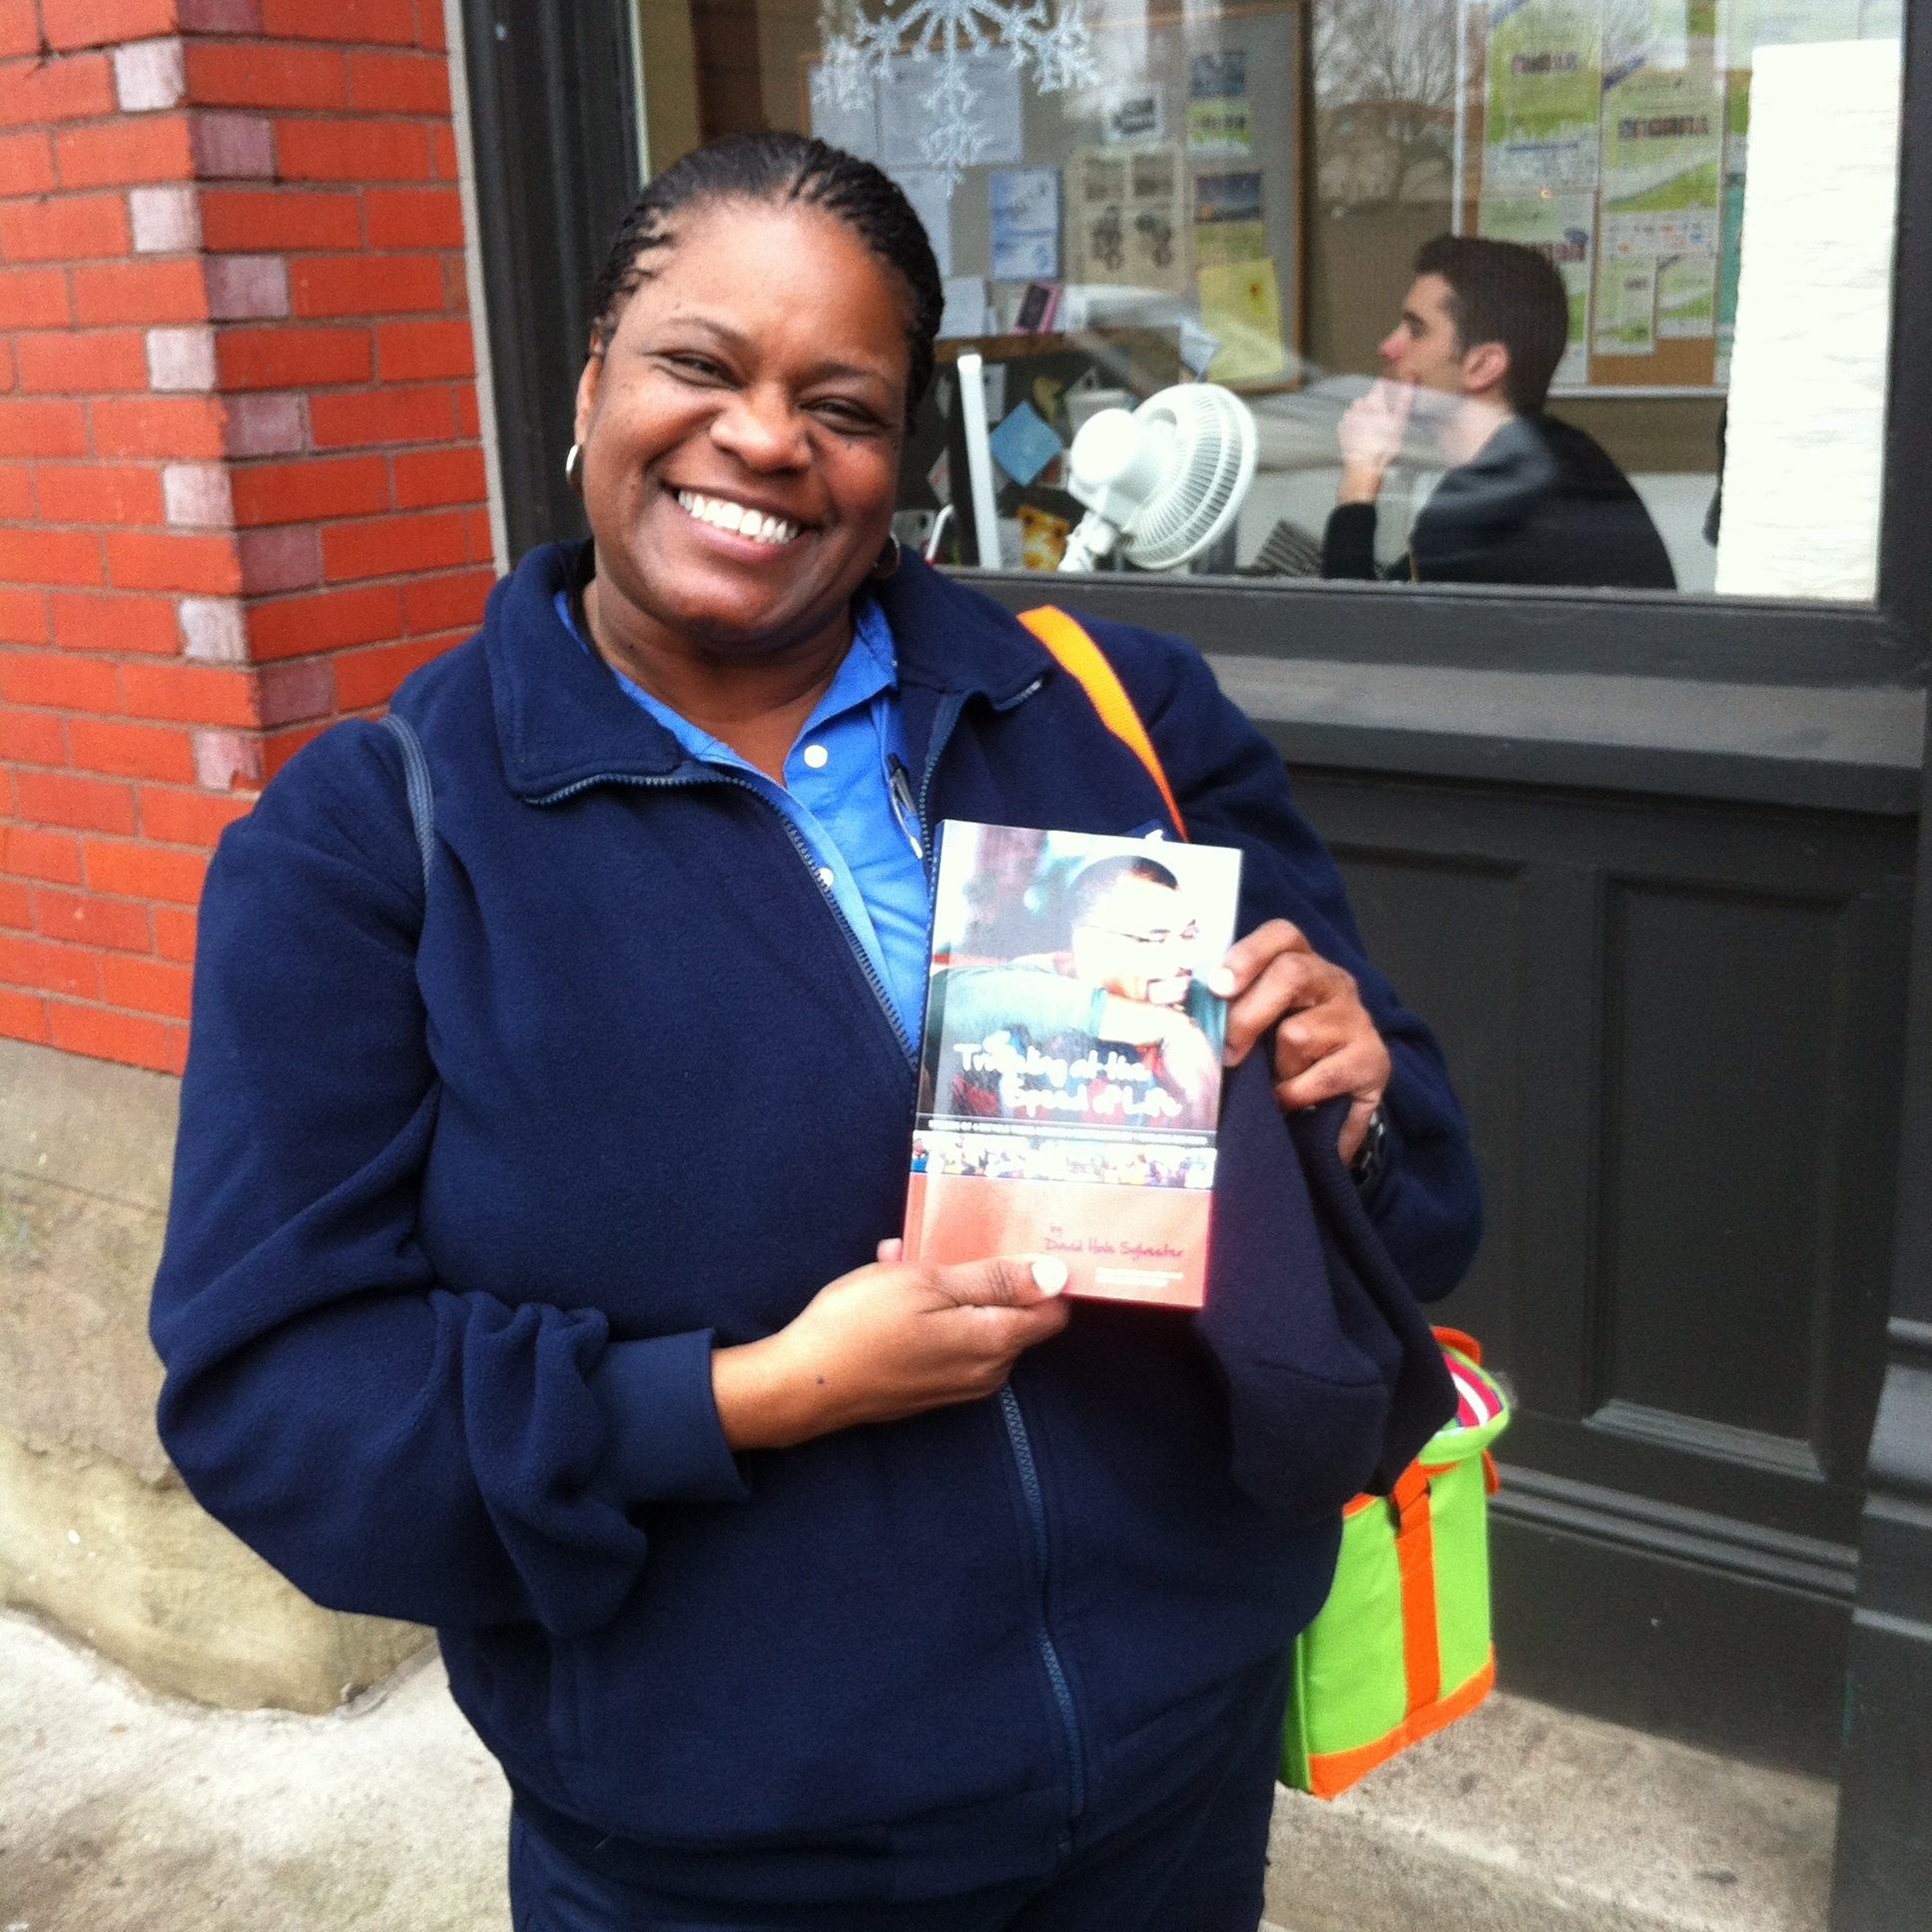 Oregon - One of the first book signings I had for my book, Traveling at the Speed of Life, was at a Portland, OR bike shop. On my way there, I met this smiling woman who wanted a copy.